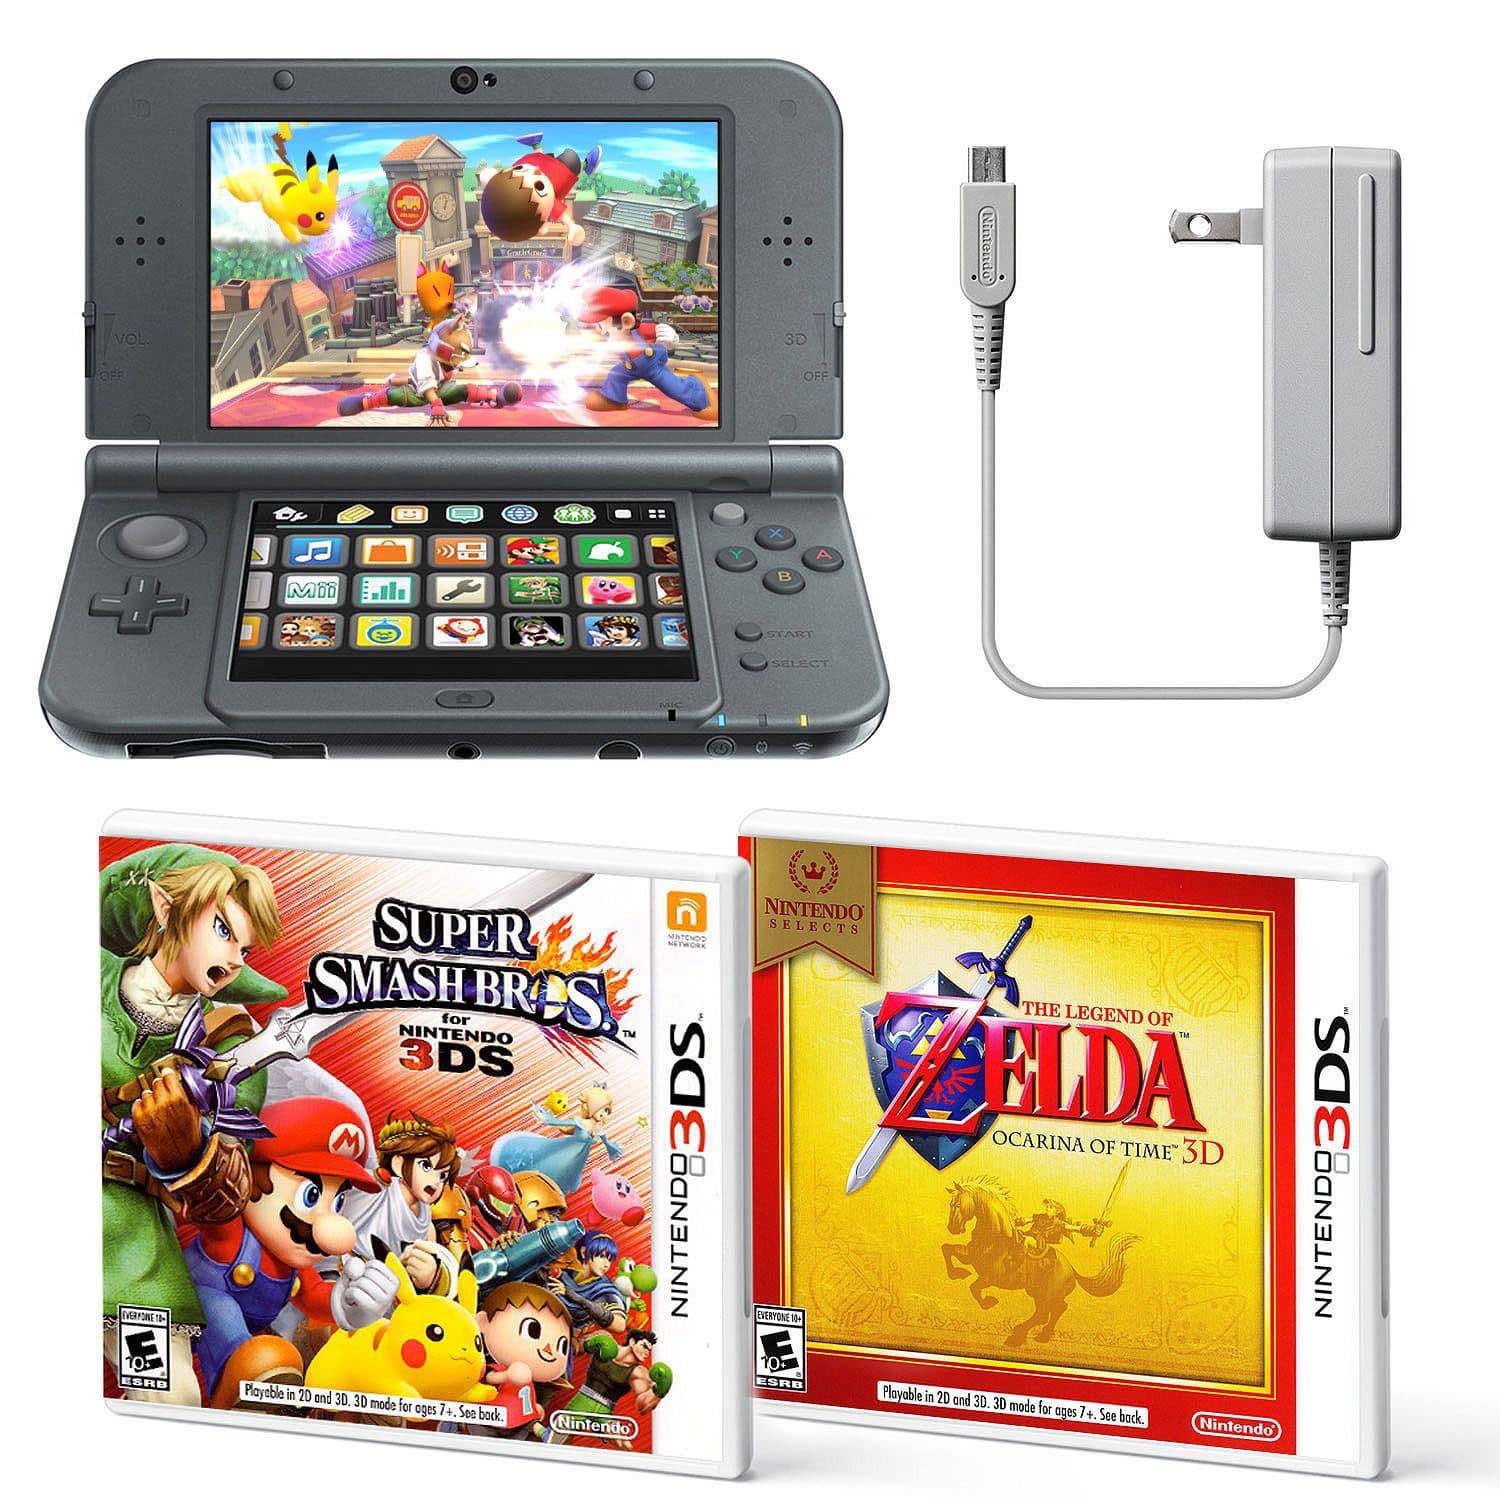 Buy a Nintendo 2DS™ system and receive a Nintendo Selects game for free!